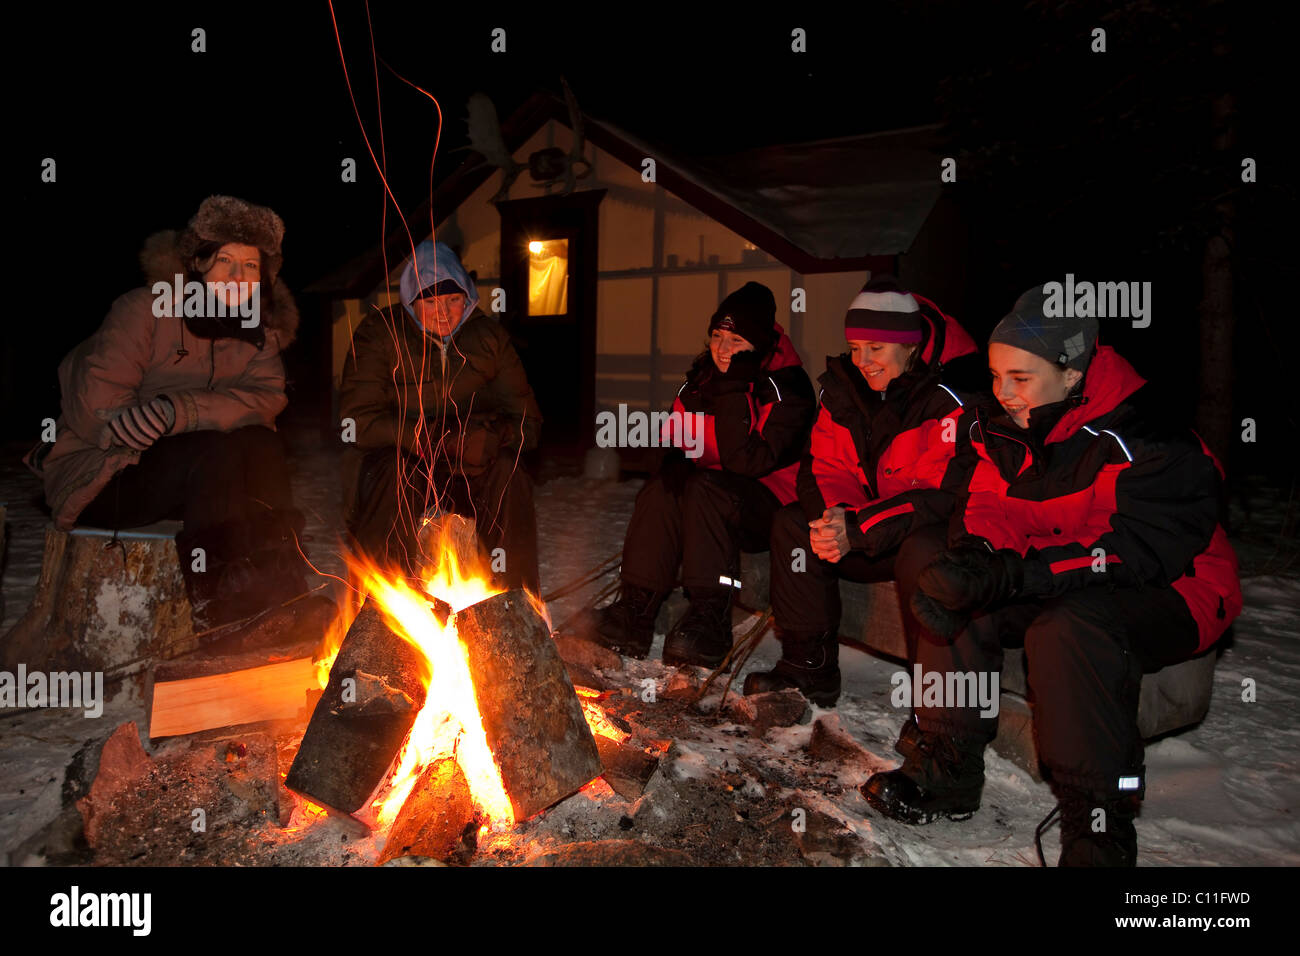 People Sitting At A Camp Fire Illuminated Wall Tent